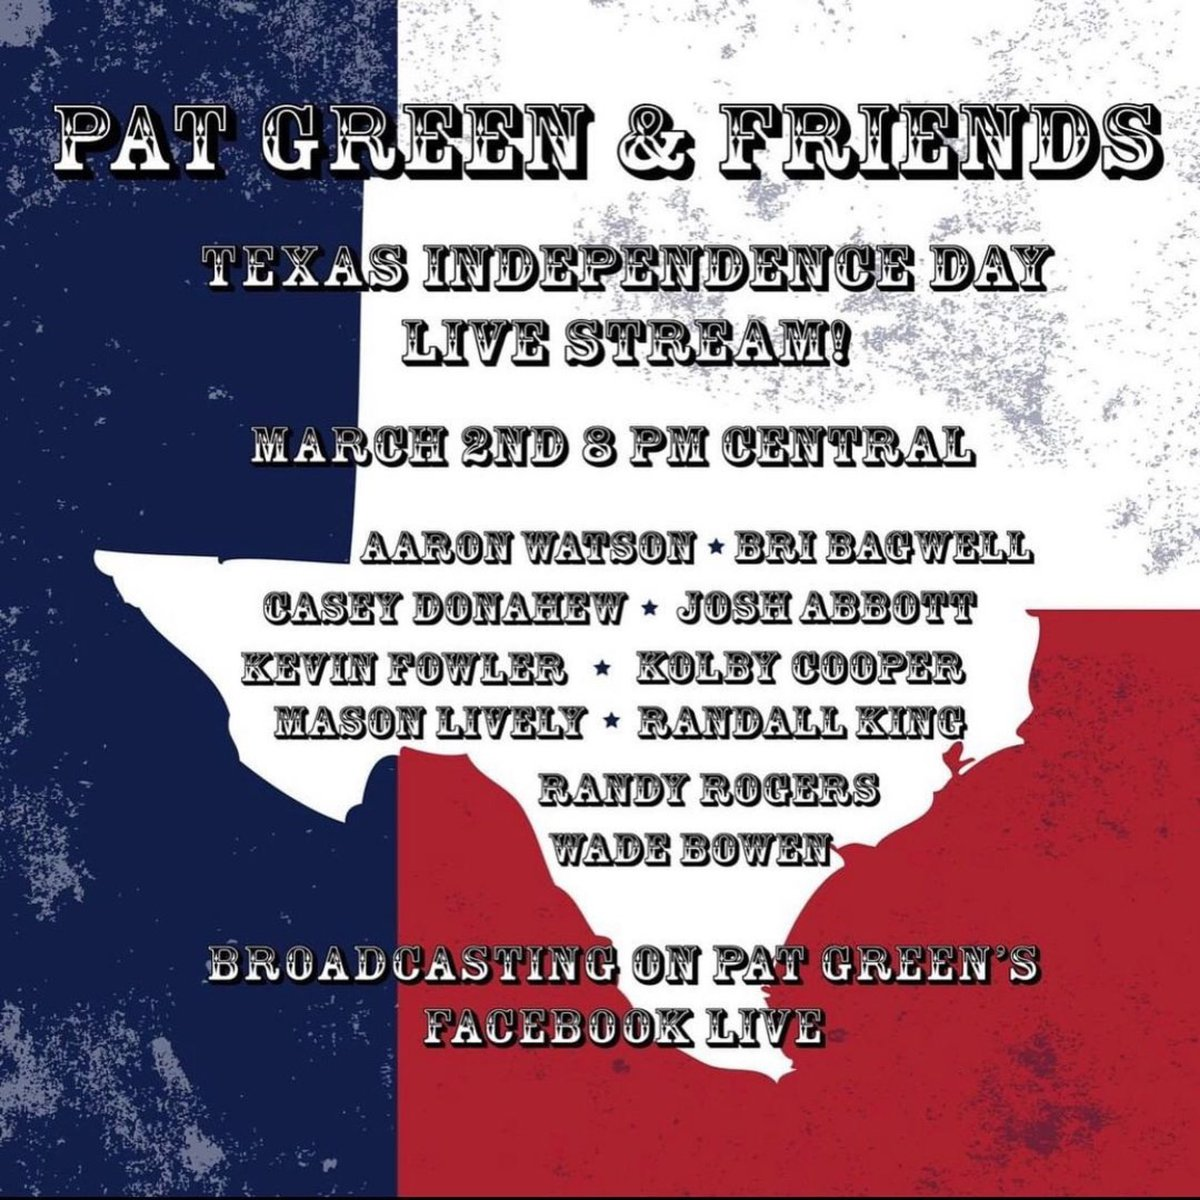 This is happening today. Honored to be a part of this lineup!! Like, holy smokes right?? #texasindependenceday #patgreen #texascountry 8pm @PATGREENMUSIC @aaron_watson @randyrogersband @WadeBowen @RandallKingBand @KevinFowler @caseydband @KolbyCooper_ @MasonLively @joshabbottband